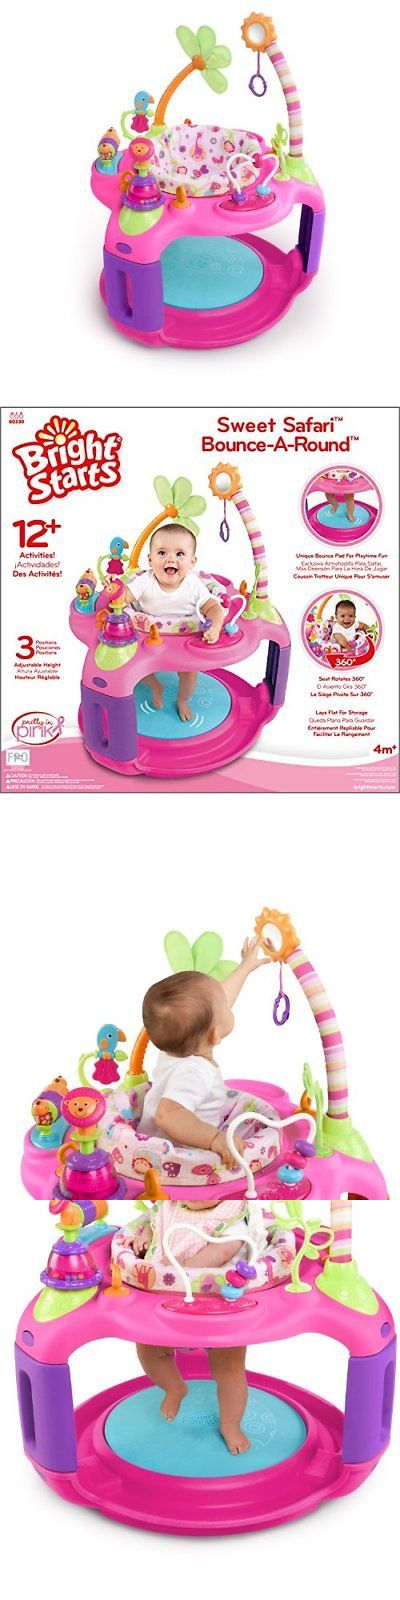 Style Of Baby Bouncer Jumper Activity Pink Girl Safari Seat Play Nursery Entertainment Top Design - Lovely baby bouncer walker Idea